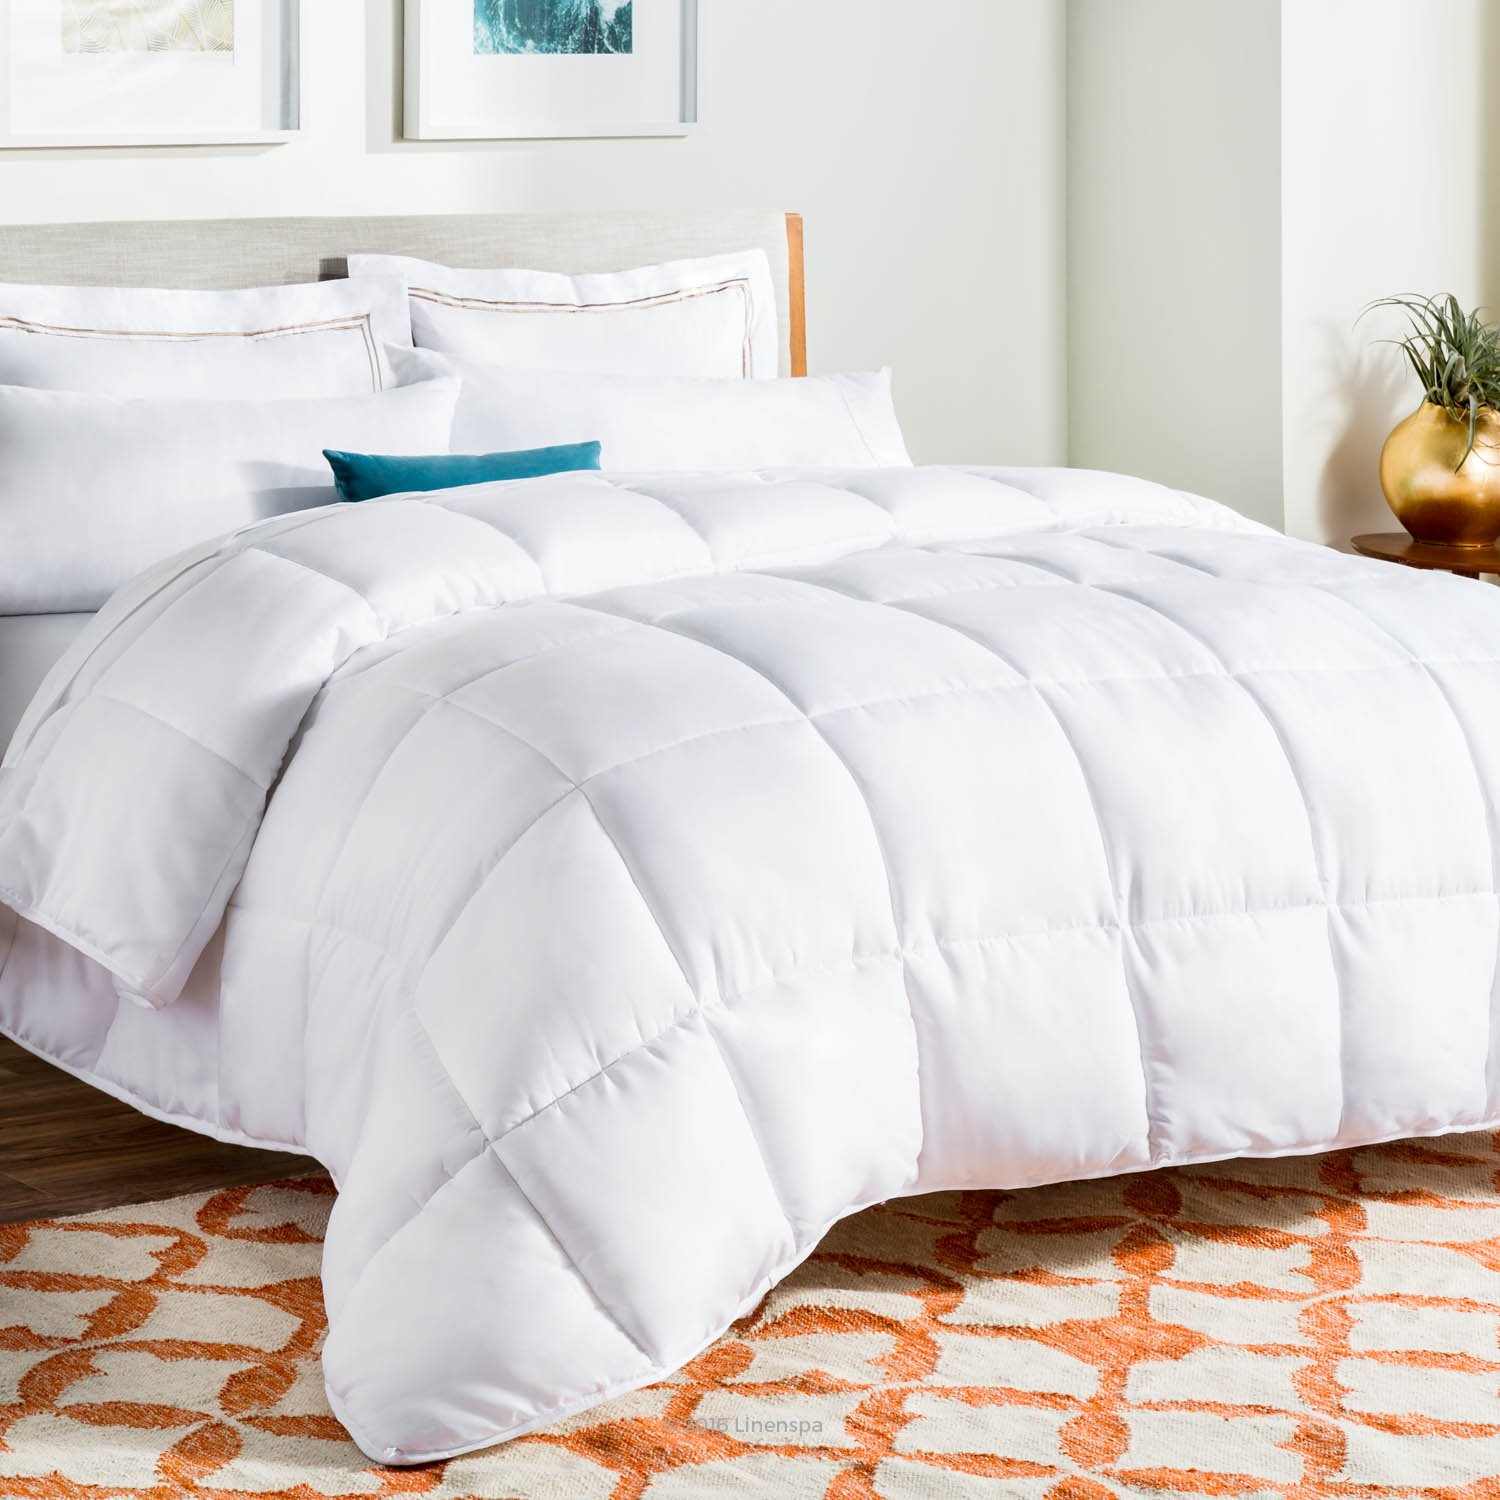 LINENSPA All Season Alternative Quilted Comforter